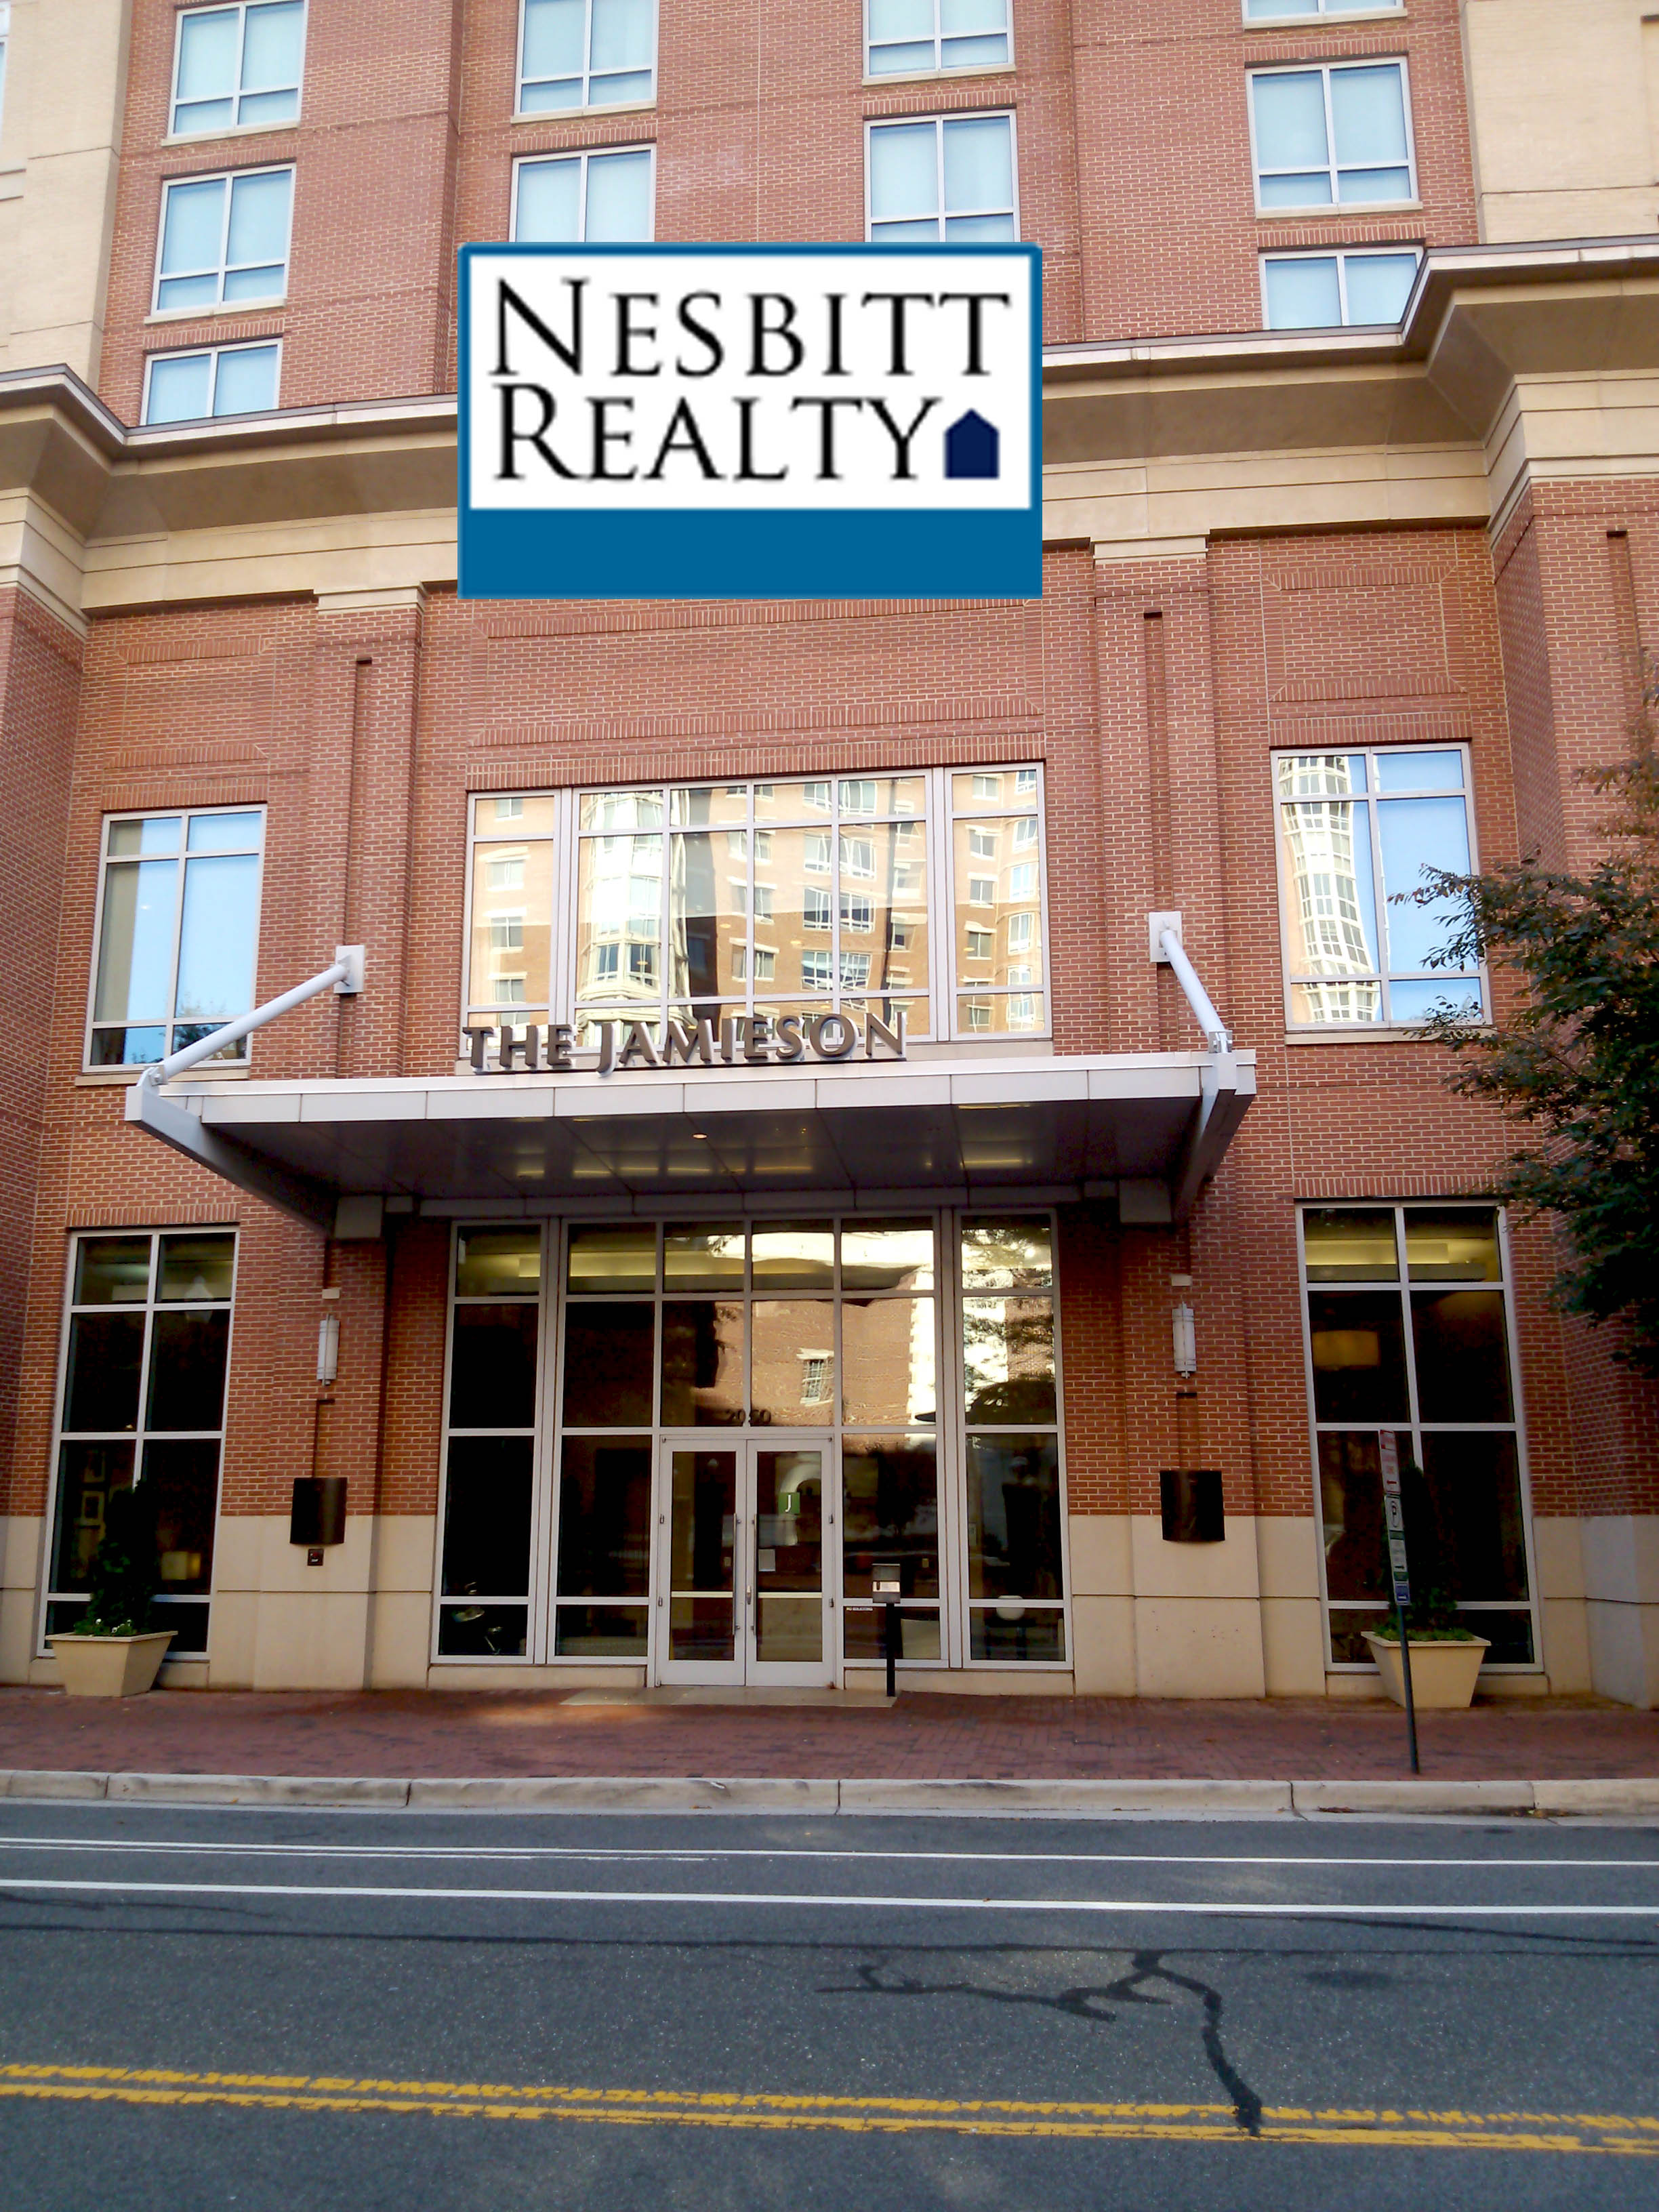 For the Jamieson Real Estate, call Nesbitt Realty